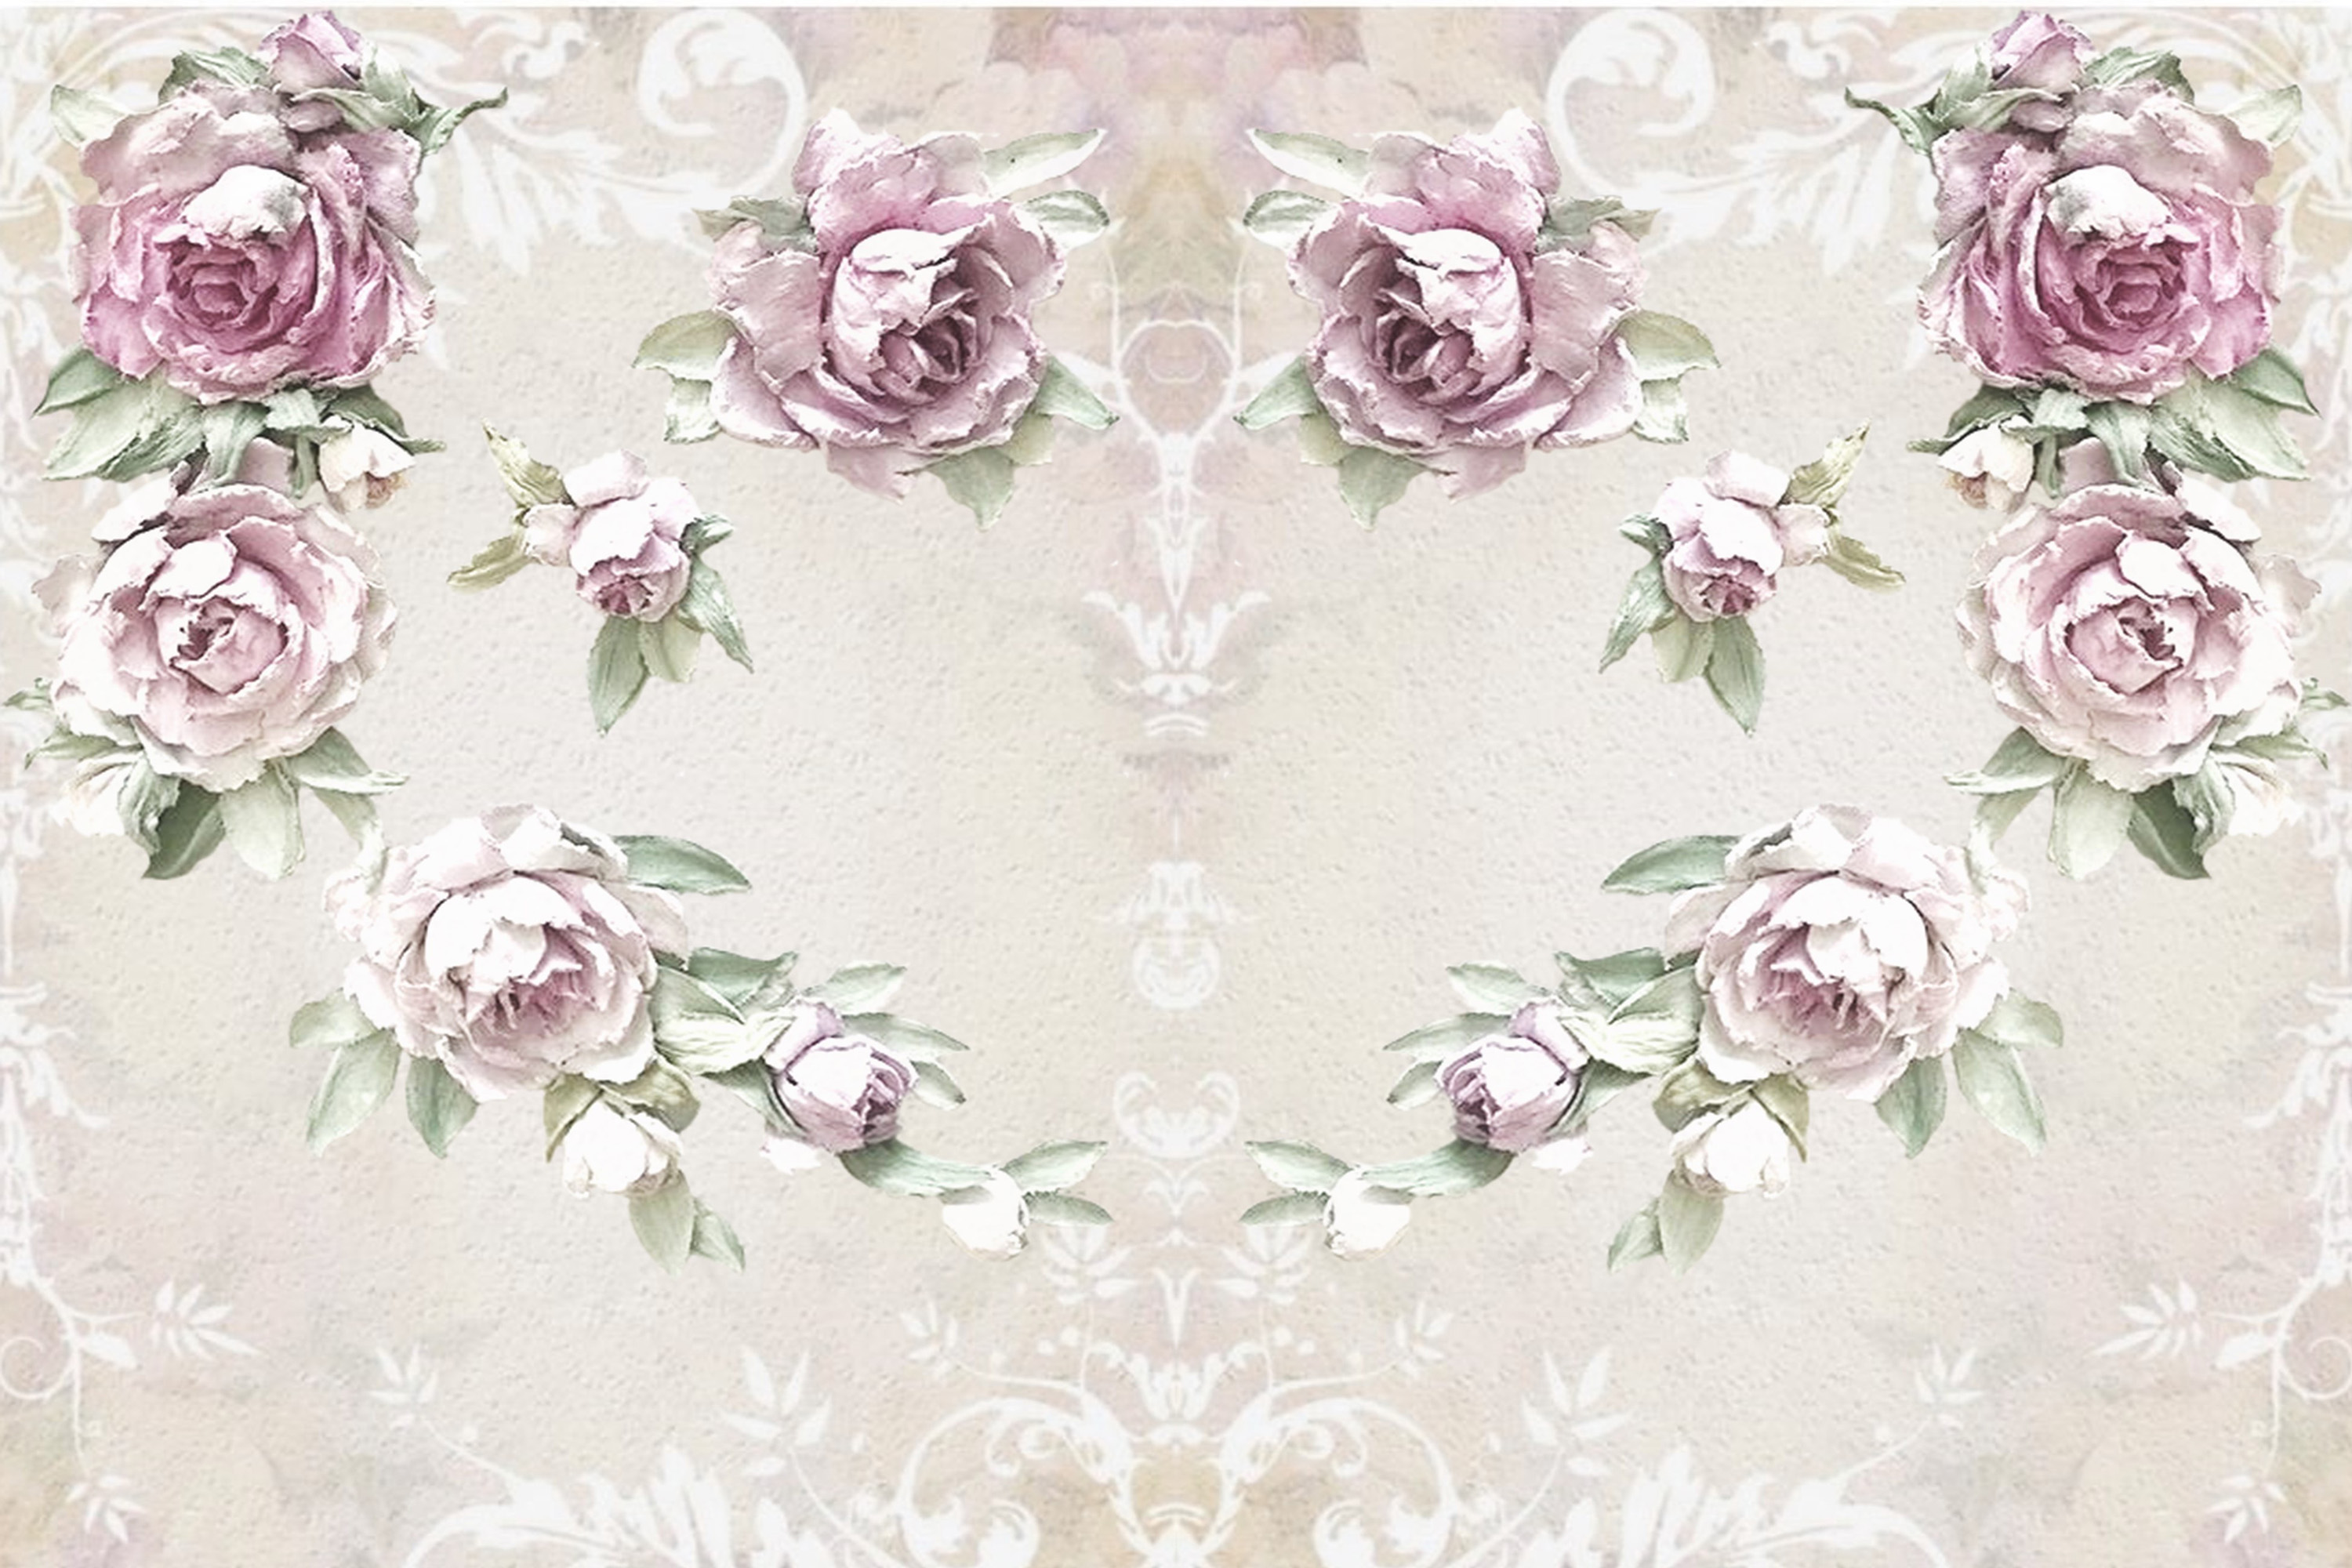 20 Journaling Background papers. Rustic Roses Commercial Use example image 5